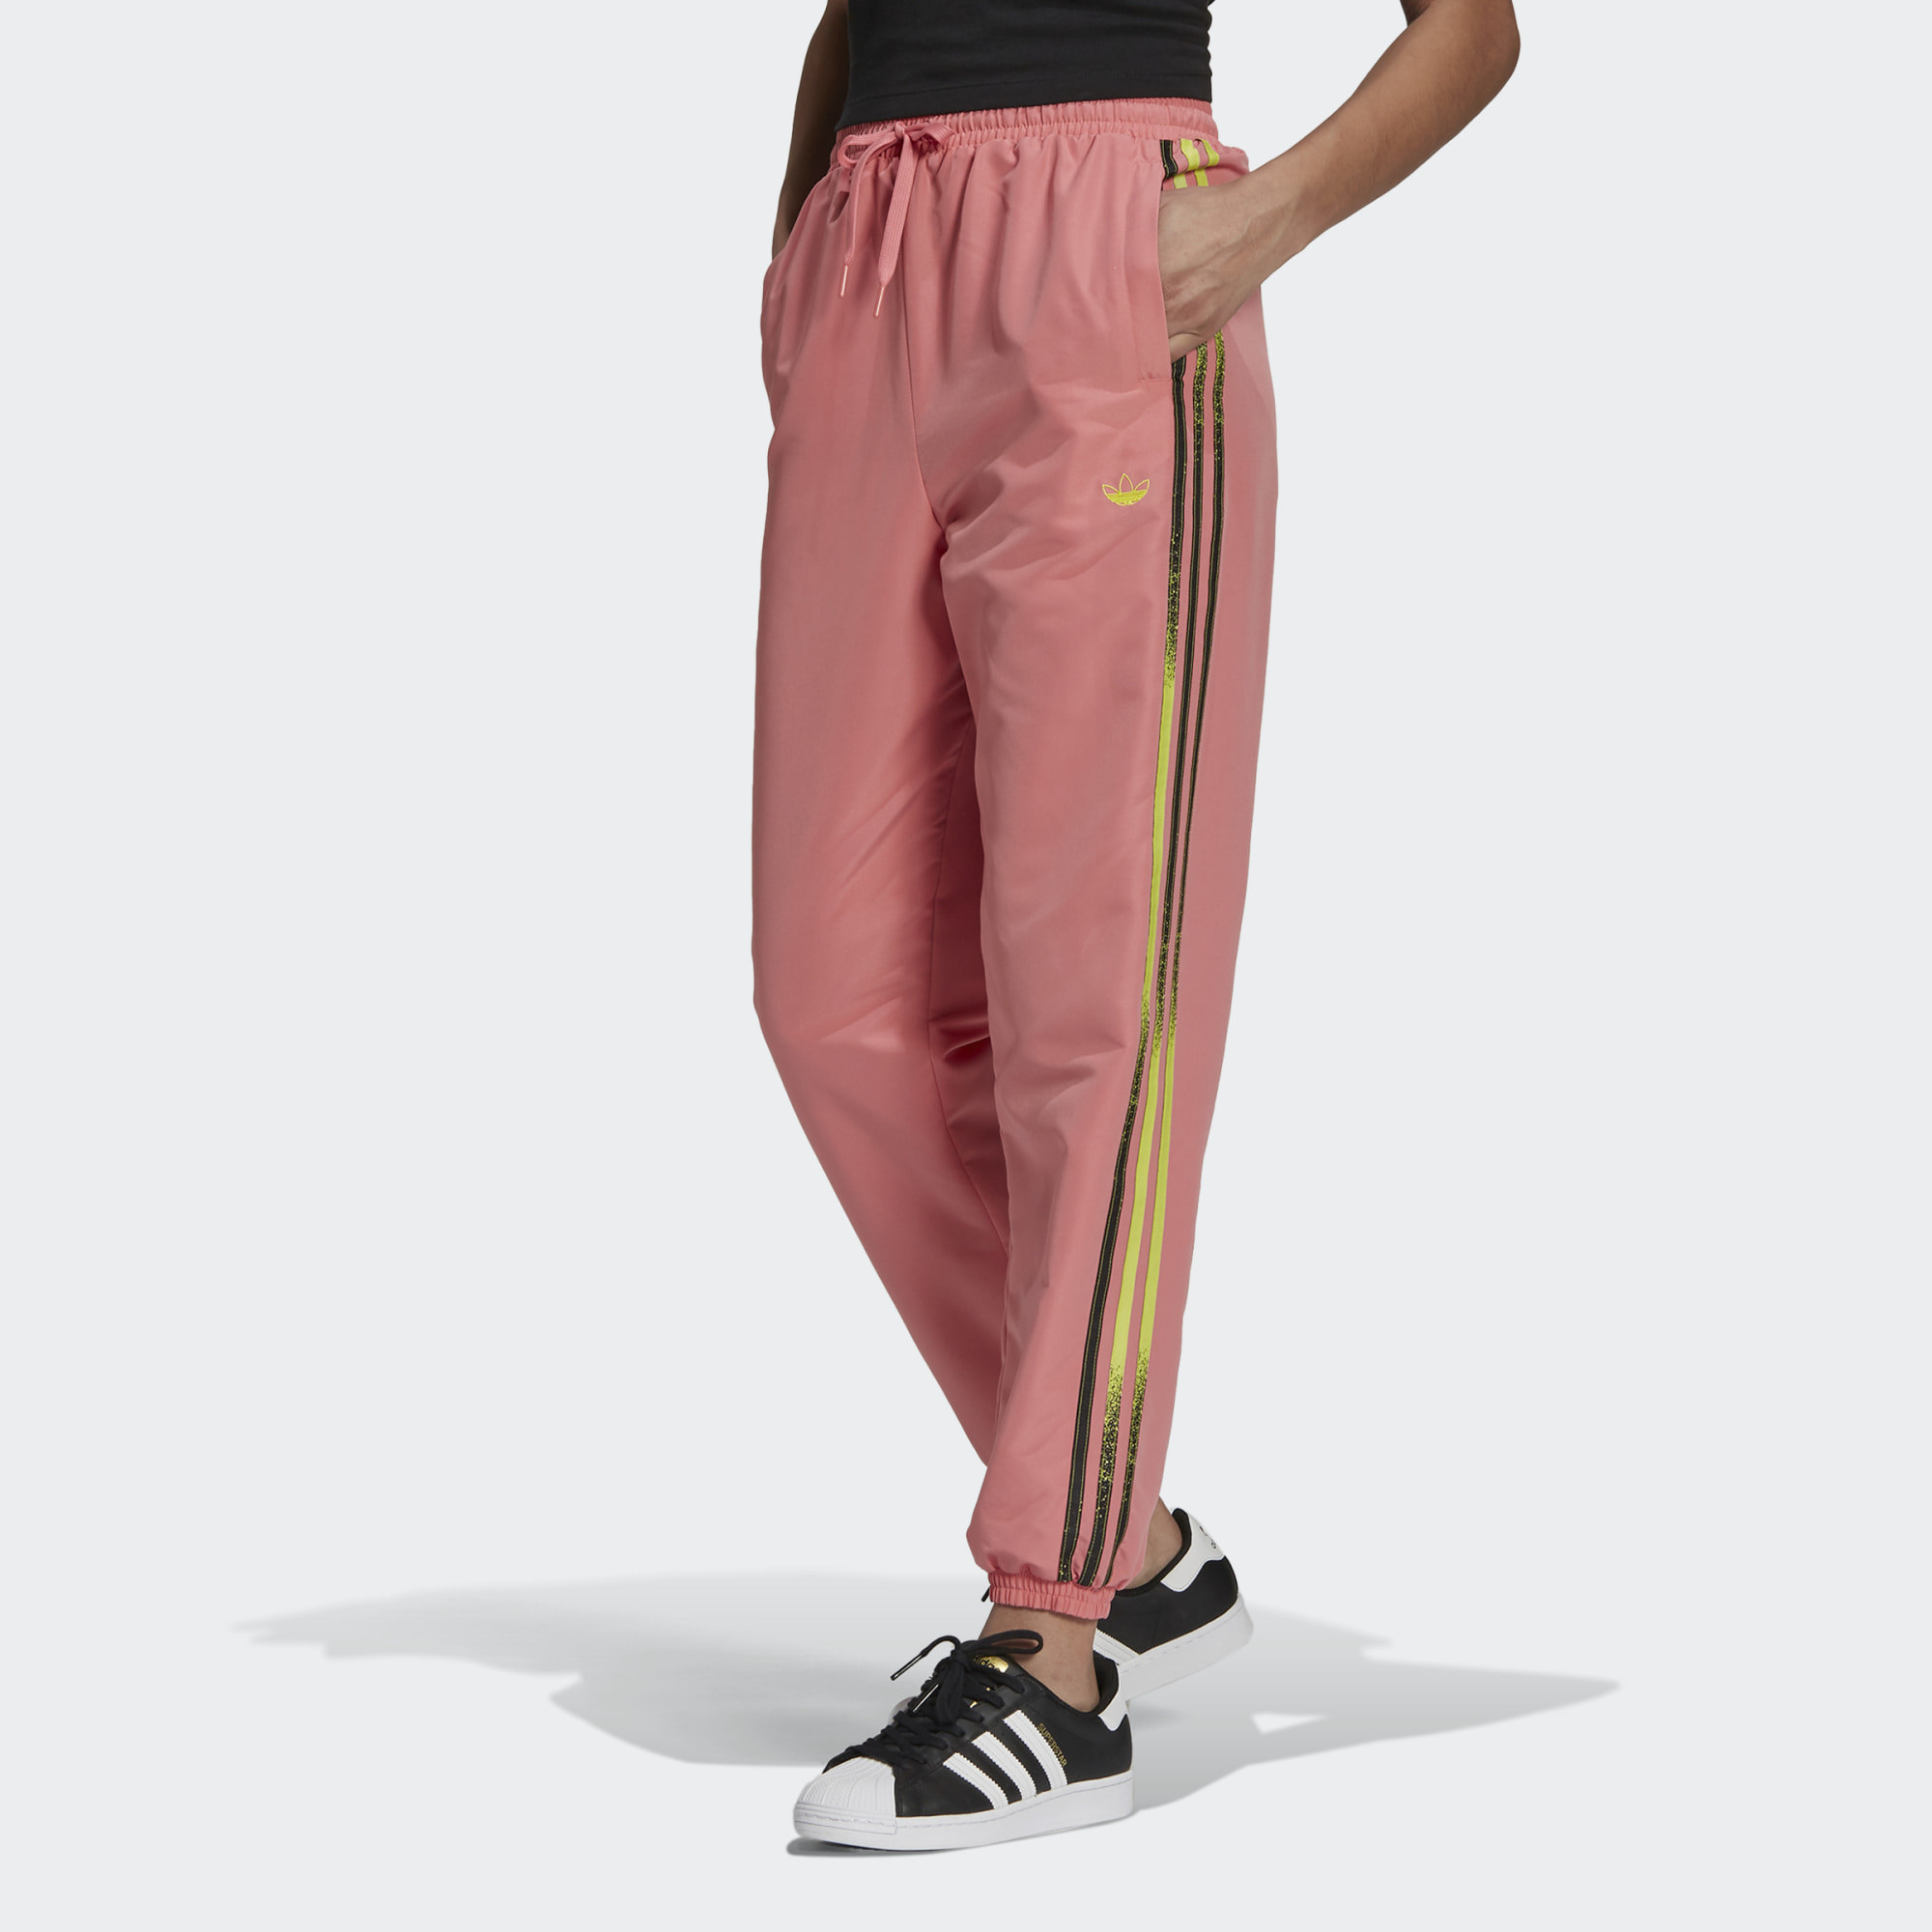 Model wearing pink workout pants with gold stripe